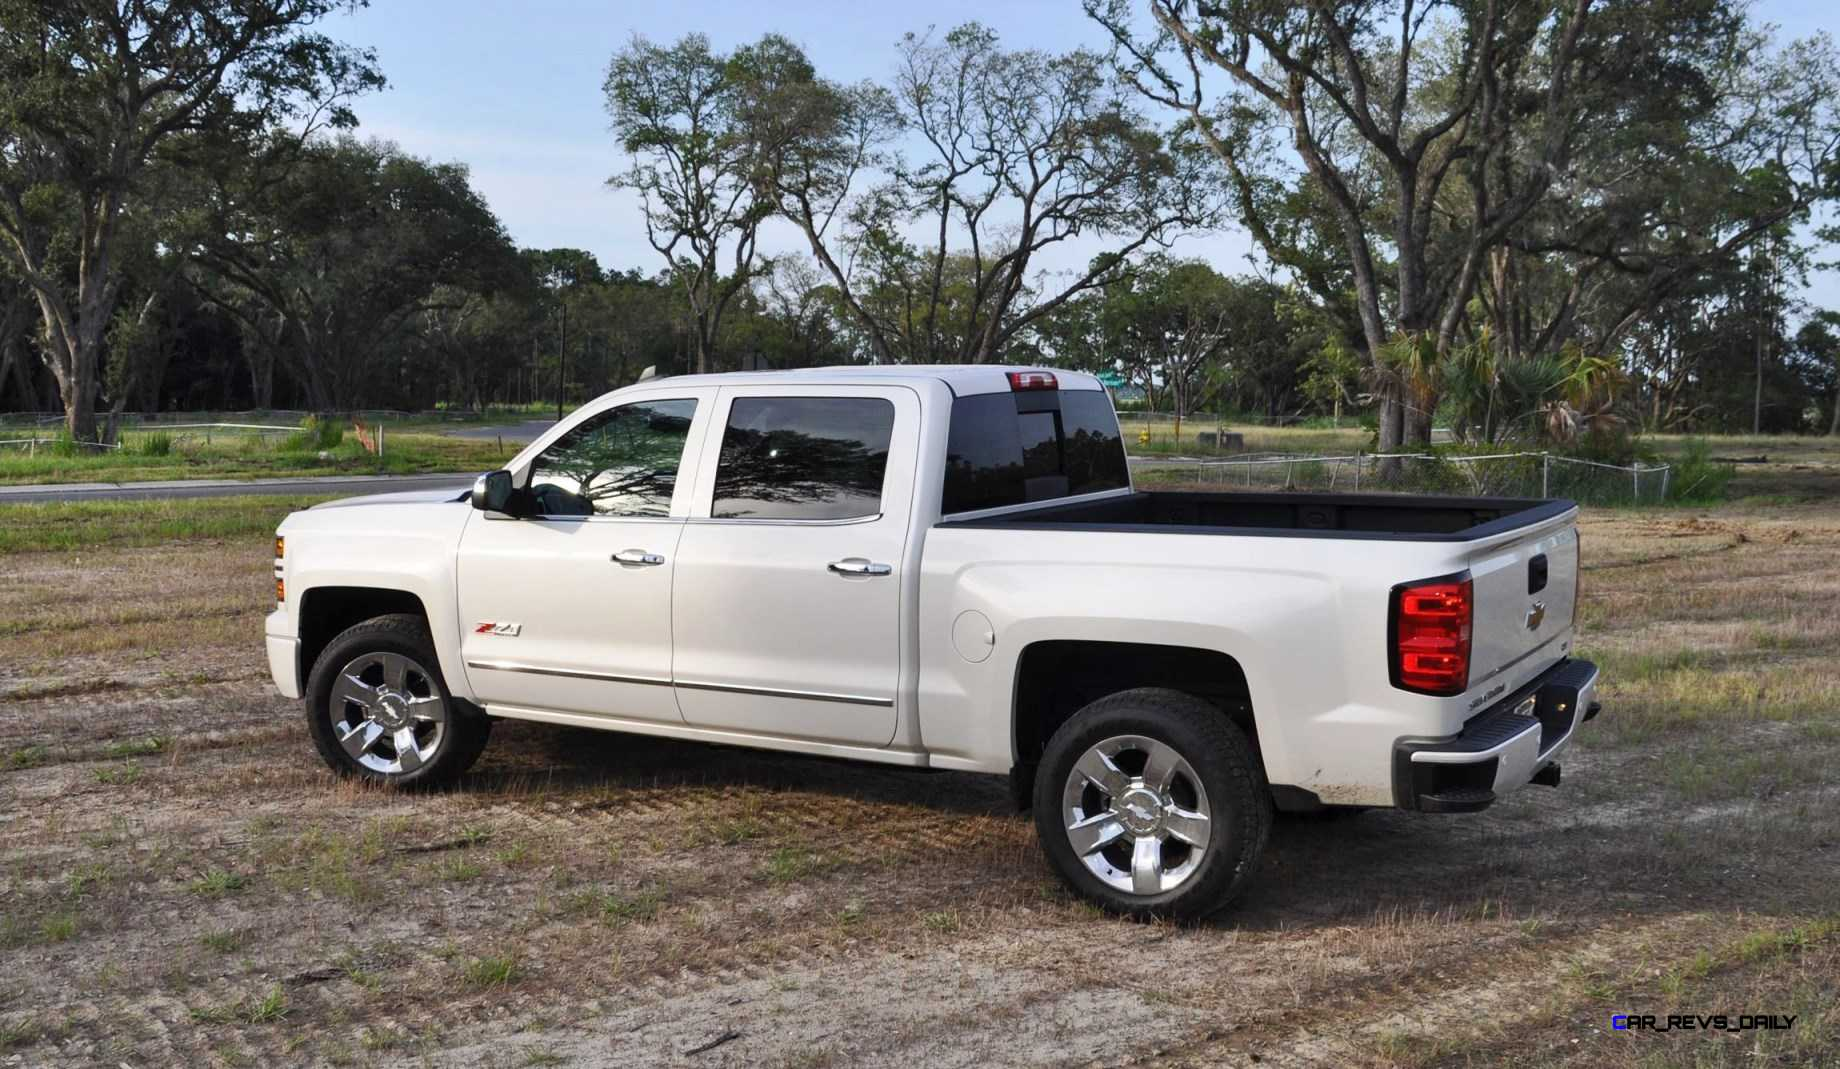 2015 chevrolet silverado ltz z71 4wd custom sport edition 17. Black Bedroom Furniture Sets. Home Design Ideas